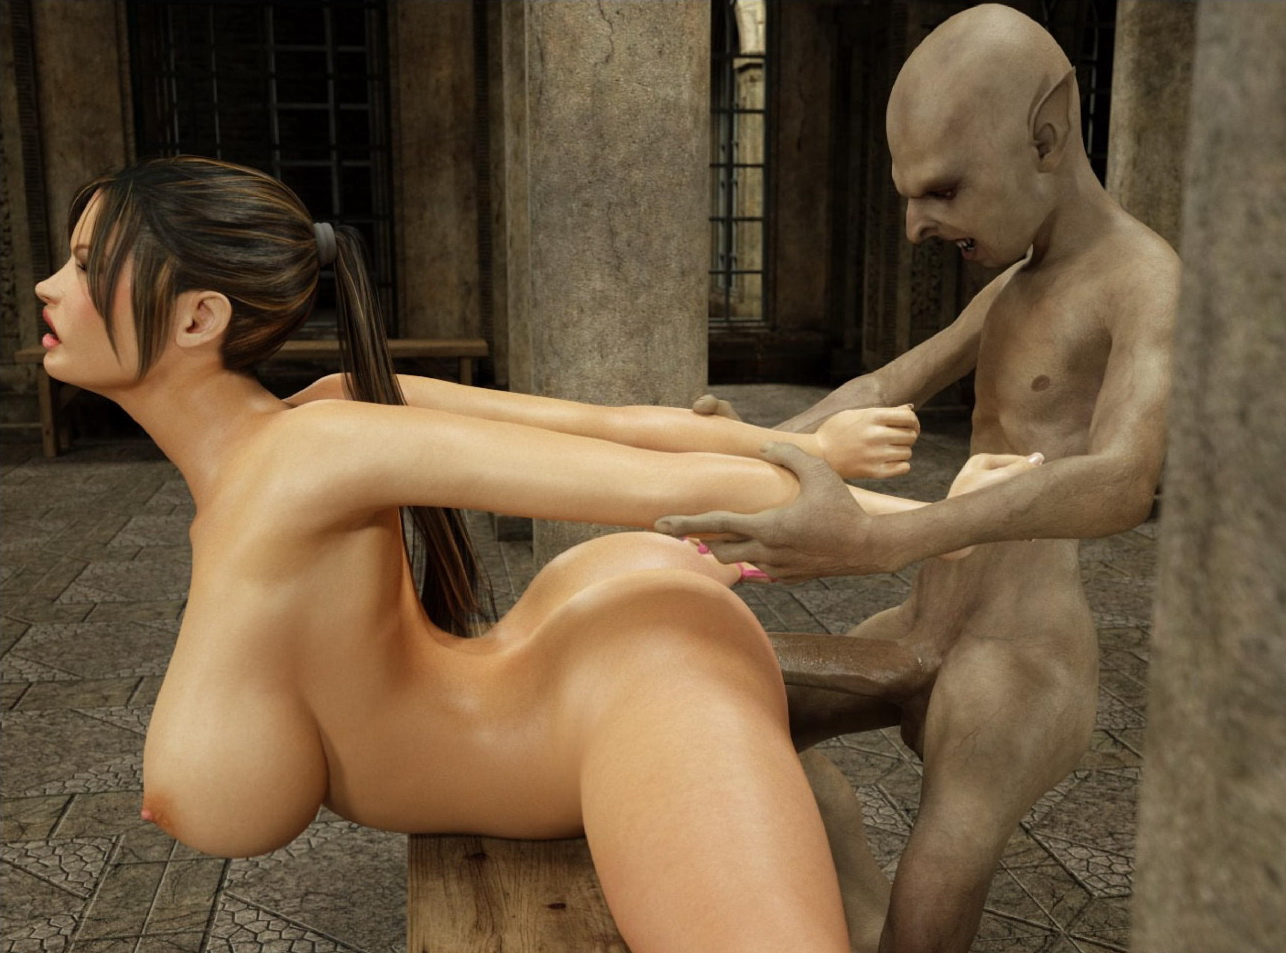 Porn 3gp lara croft vampire sex videos  xxx video